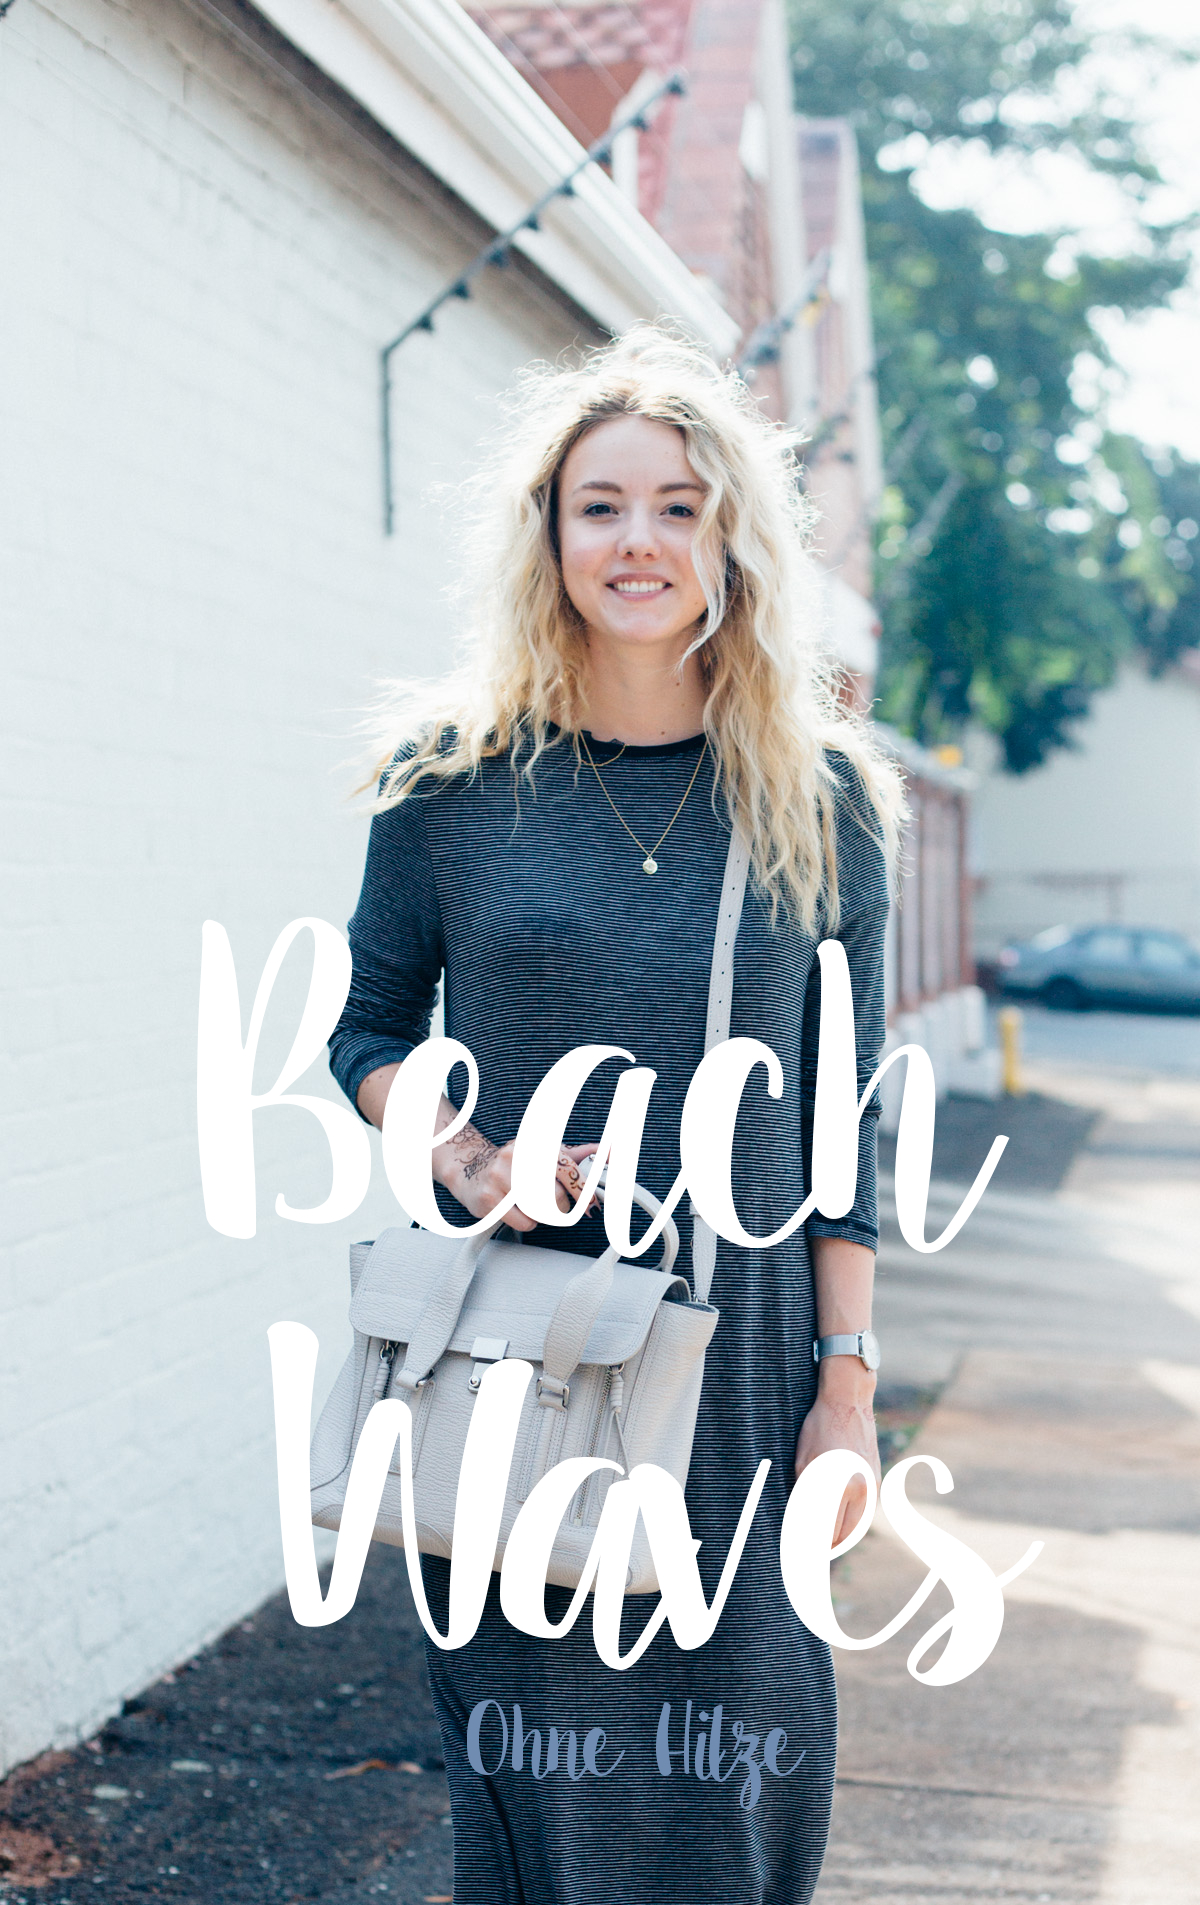 Tutorial Beach Waves Ohne Hitze The Limits Of Control